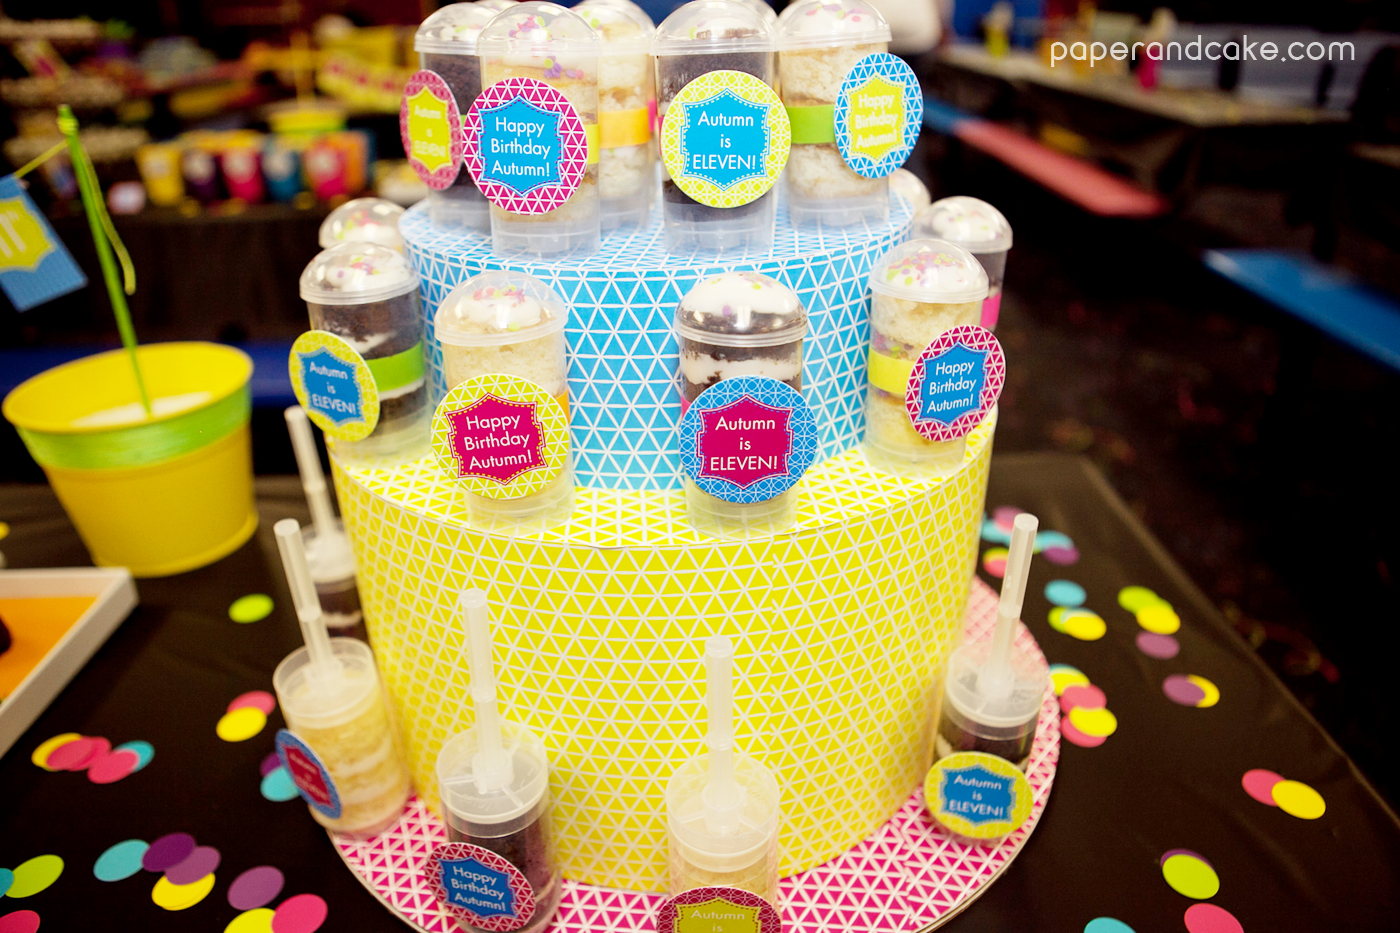 Neon Roller Skate Party Real Life Party Paper And Cake Paper And